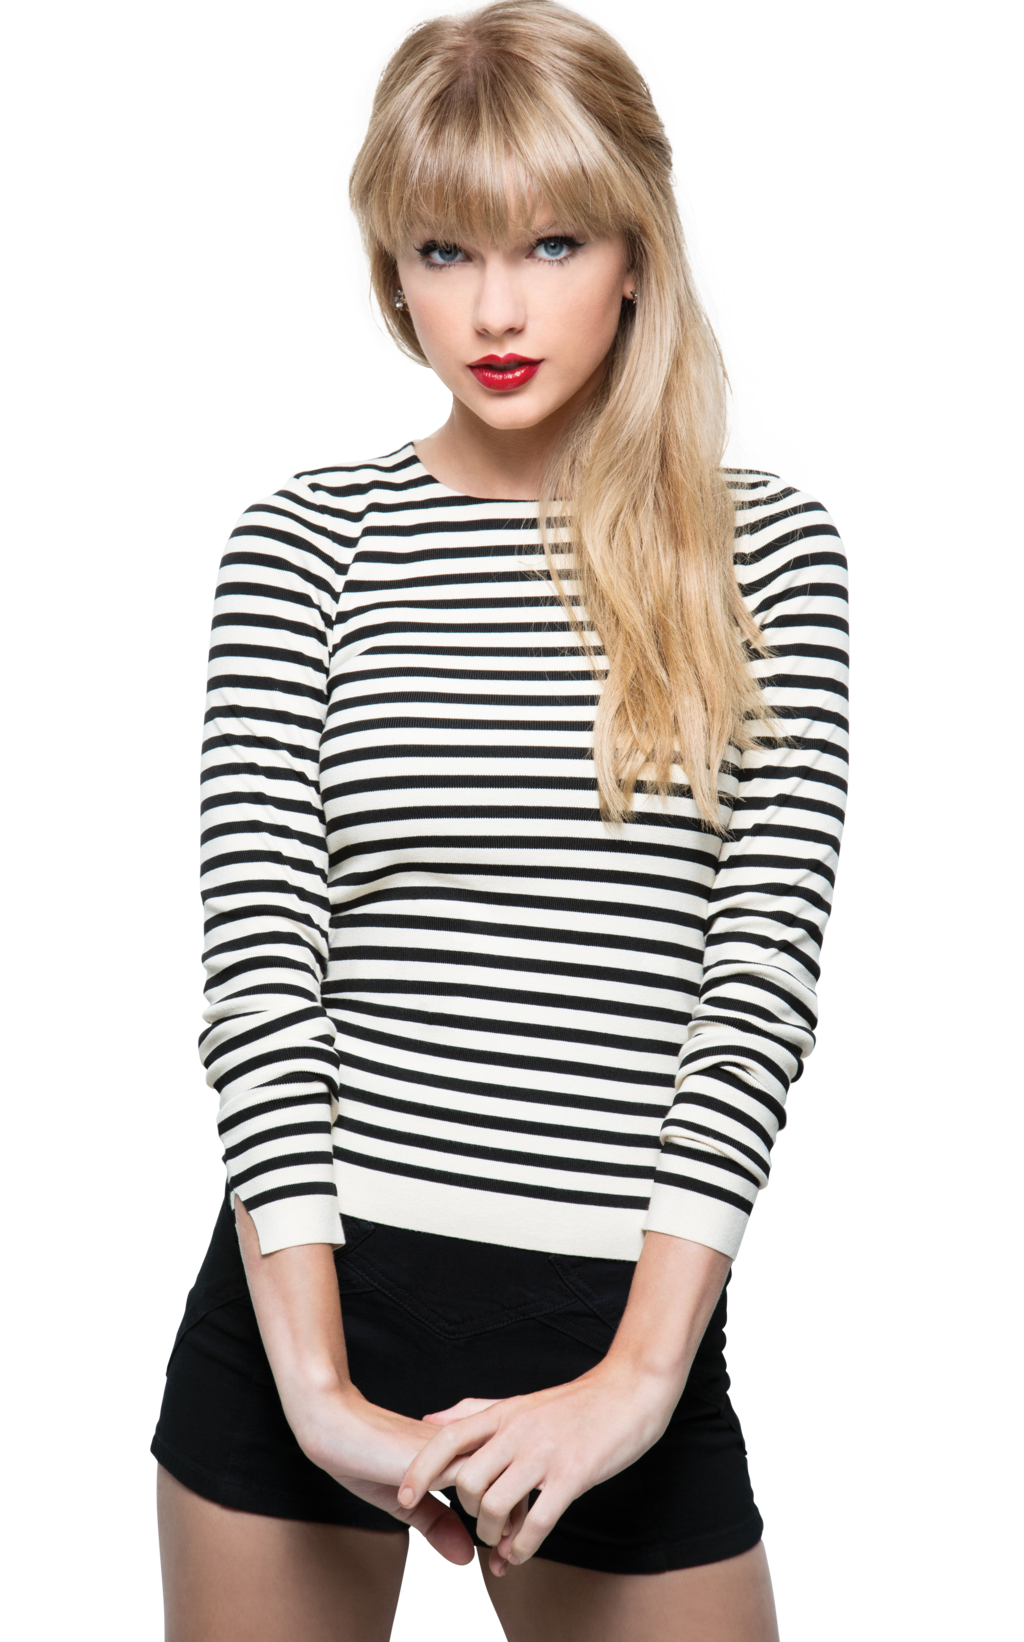 PNG File Name: Taylor Swift PlusPng.com  - Taylor Swift PNG